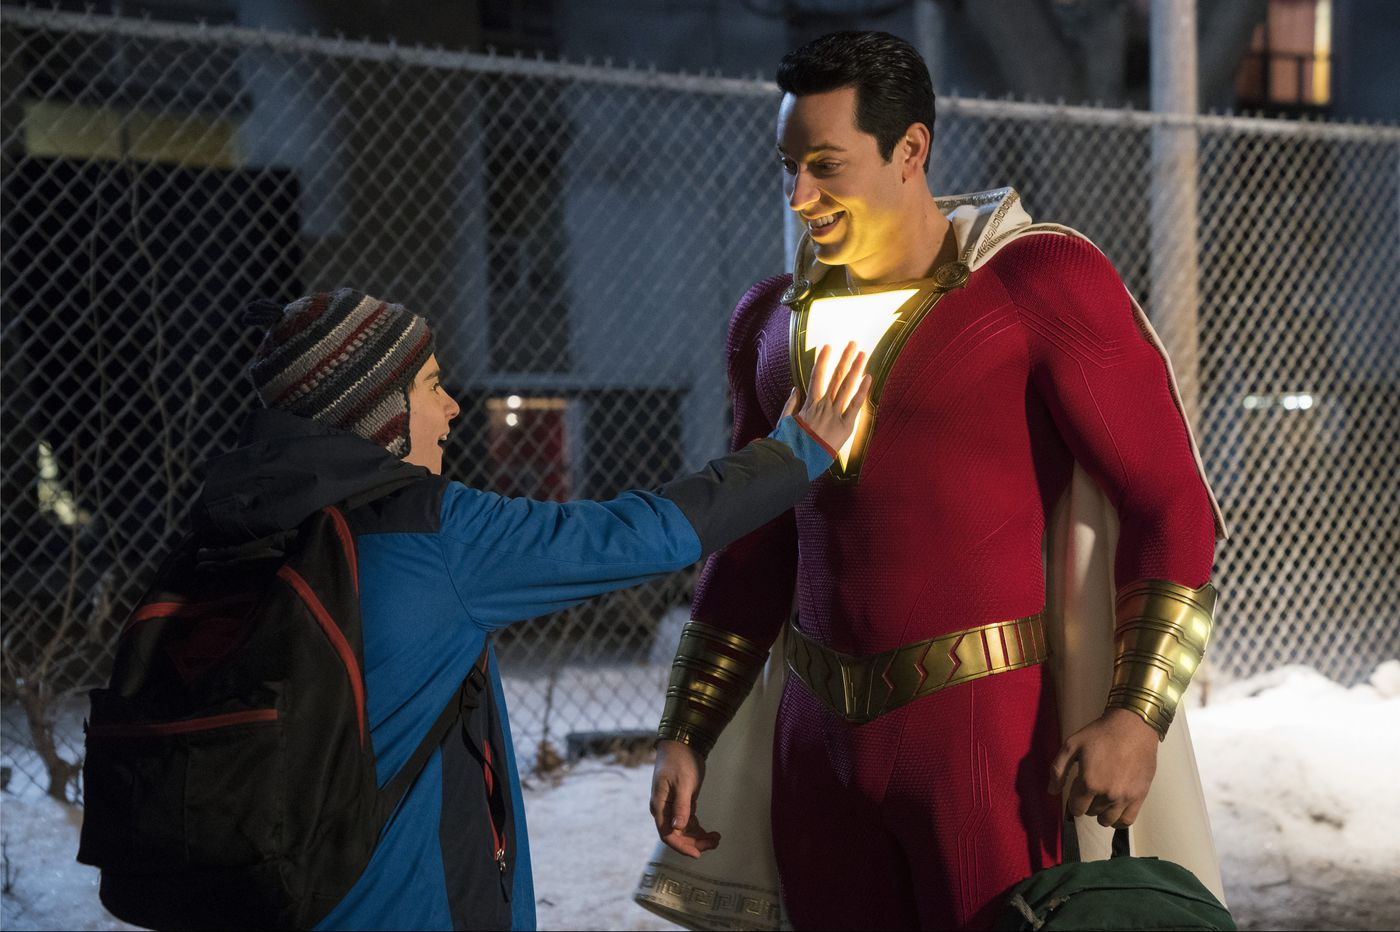 DC Comics' upcoming film 'Shazam!' is set in Philly, but it wasn't filmed here, and other Philly trailers from Comic Con